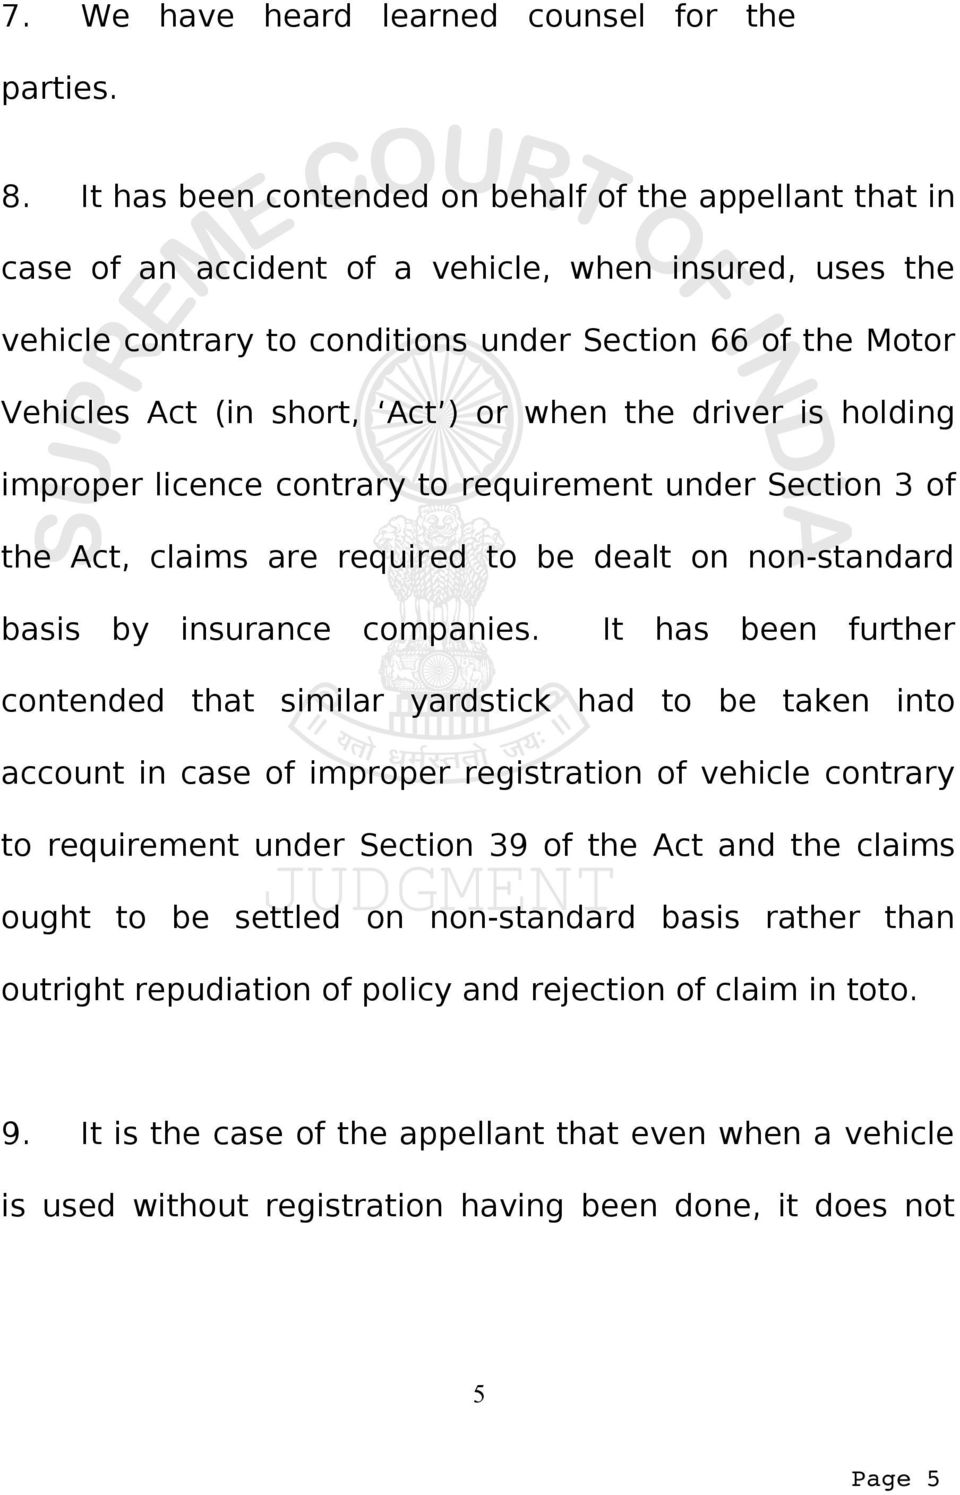 Act ) or when the driver is holding improper licence contrary to requirement under Section 3 of the Act, claims are required to be dealt on non-standard basis by insurance companies.